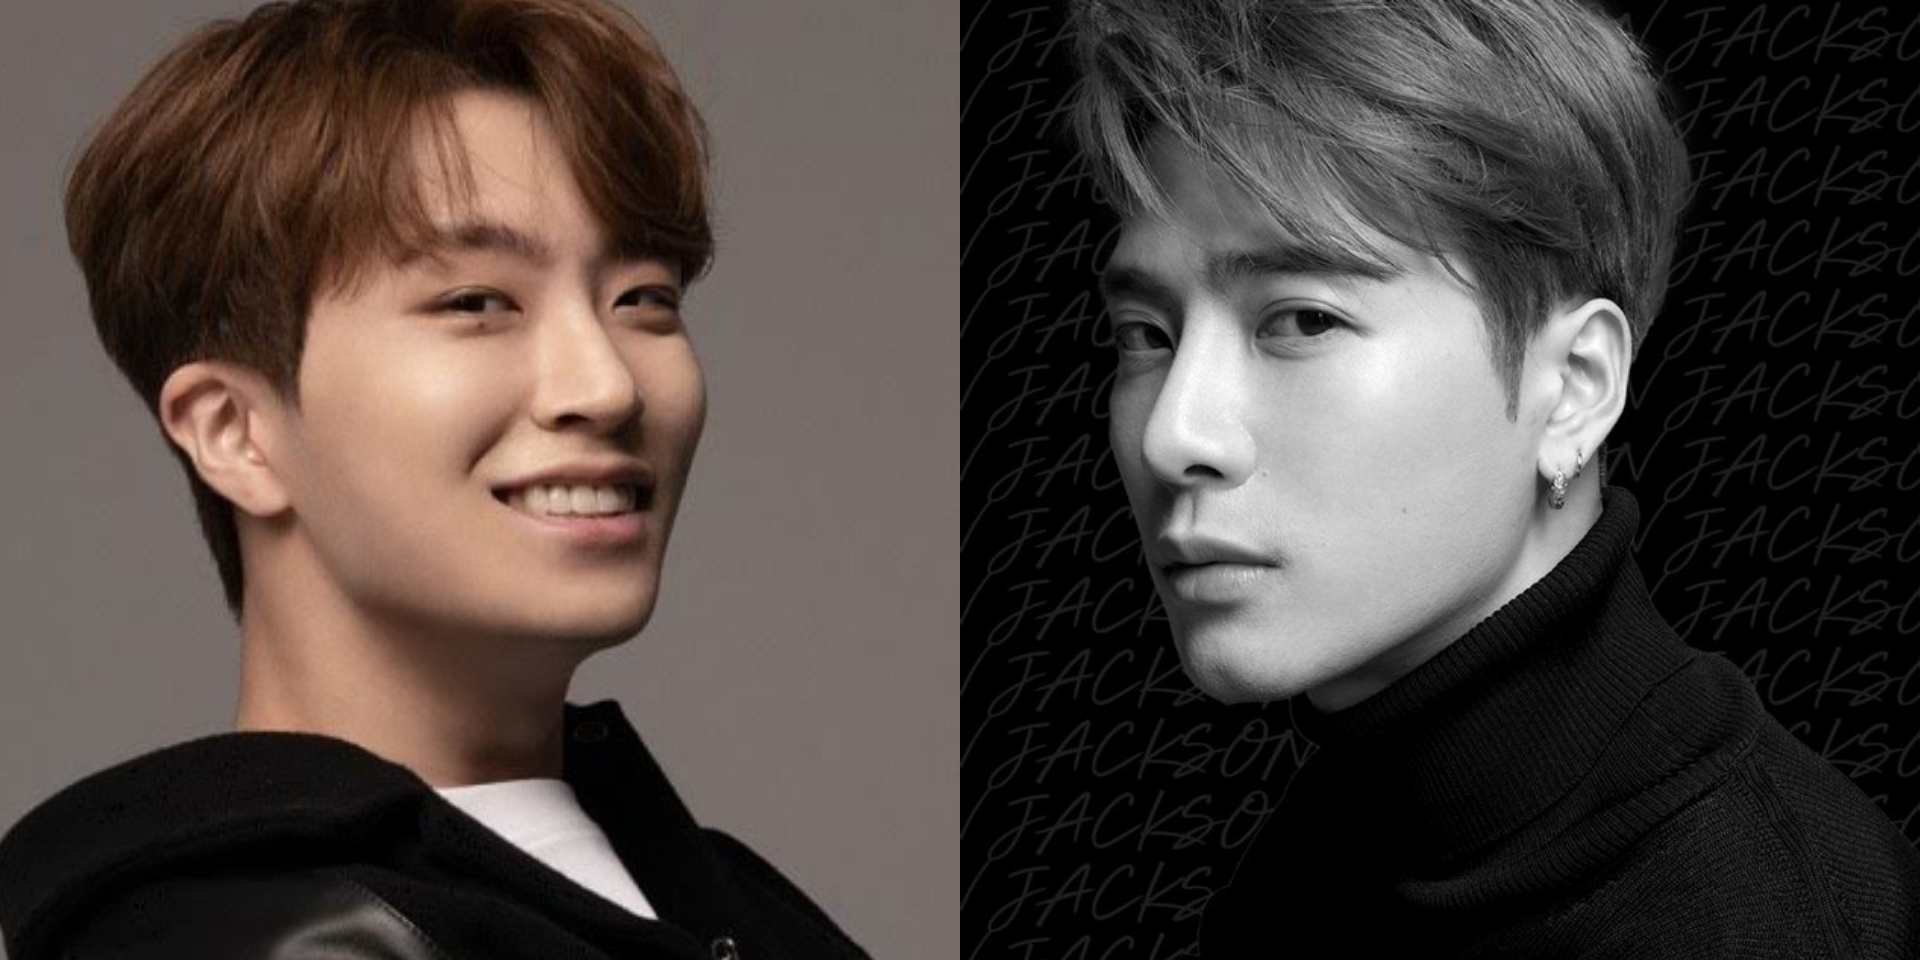 Sublime Agency welcomes GOT7 members Jackson Wang and Youngjae